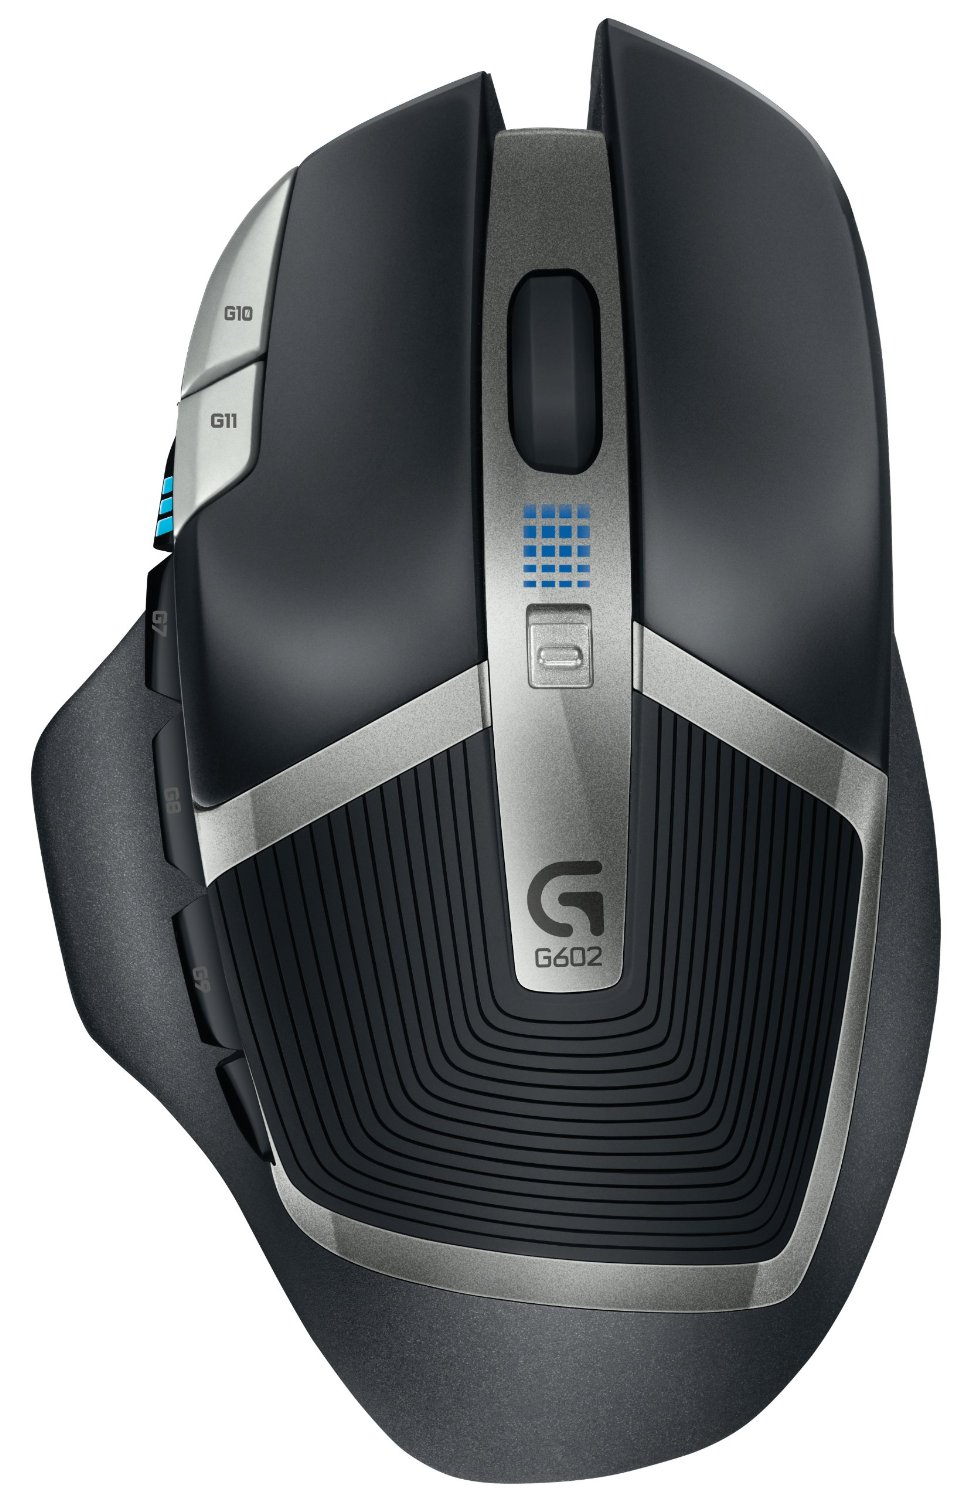 Logitech G602 Wireless Gaming Mouse with 250 Hour Battery Life limited edition logitech g403 prodigy wireless gaming mouse with high performance gaming sensor